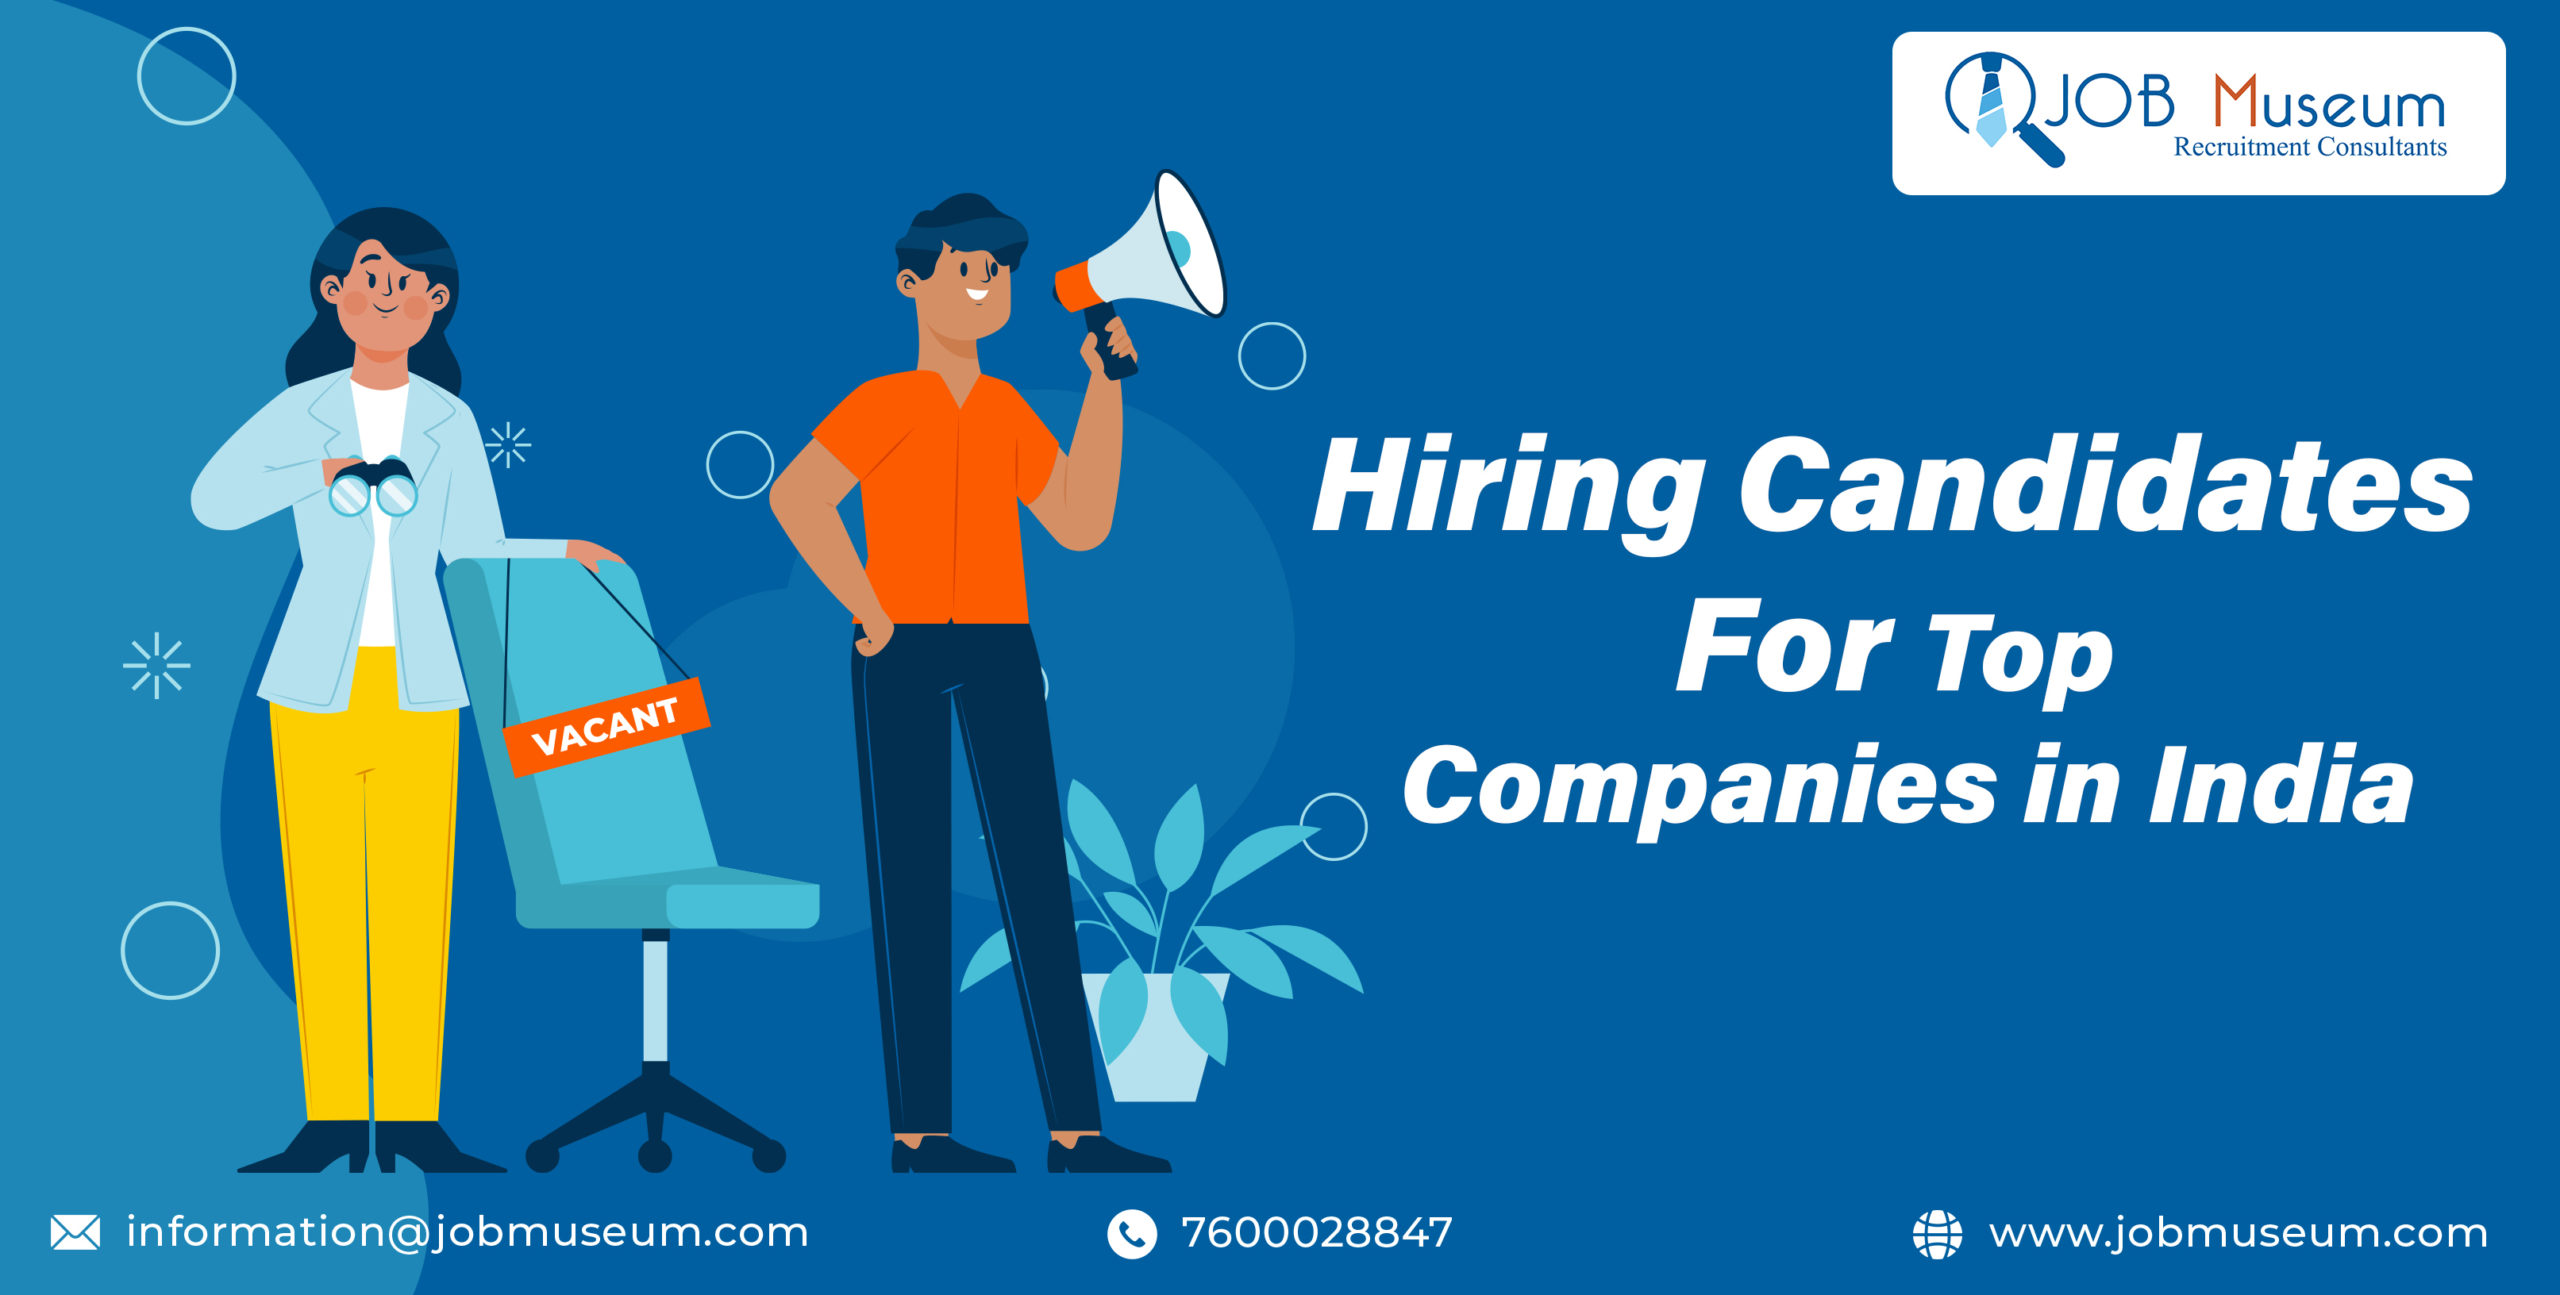 Job Museum Hiring Best Candidates for Top Companies in India - Hire Staff for your Company